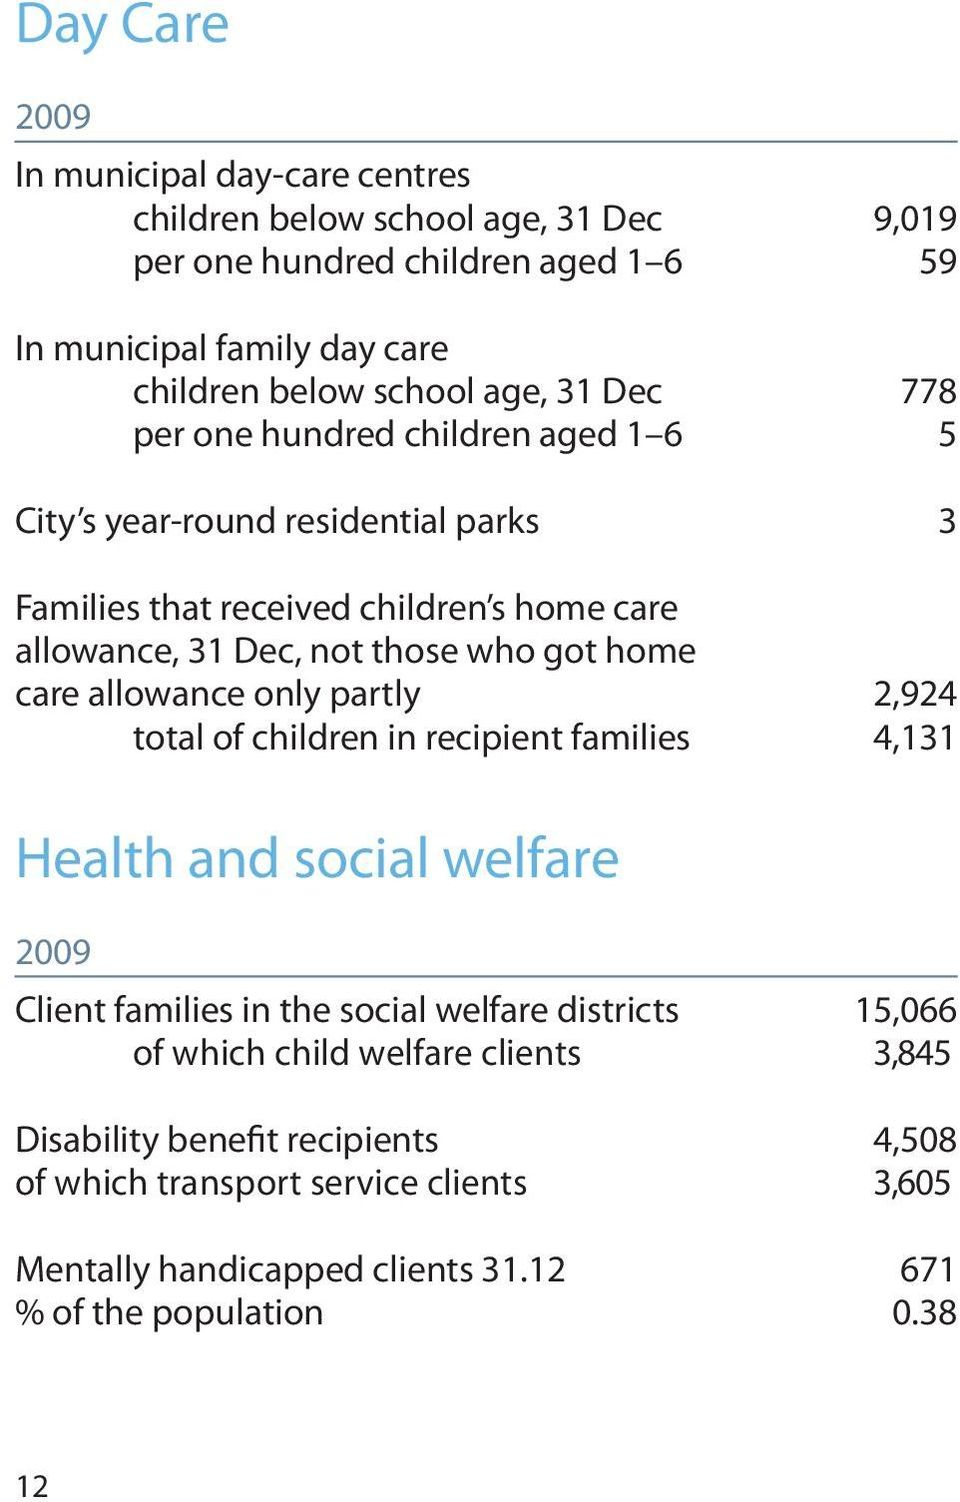 home care allowance only partly 2,924 total of children in recipient families 4,131 Health and social welfare 2009 Client families in the social welfare districts 15,066 of